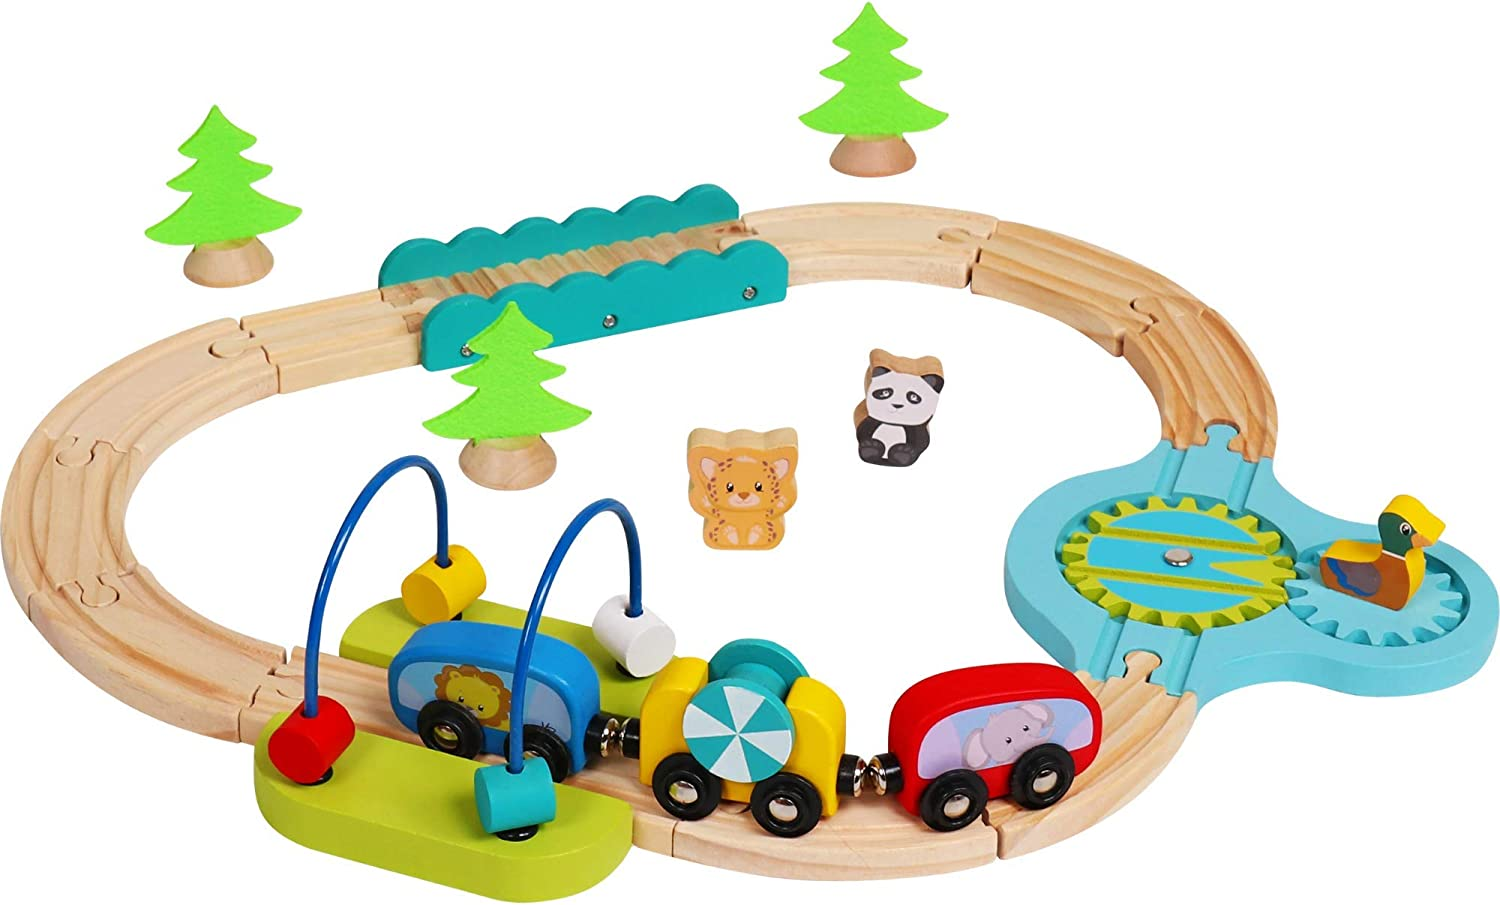 Vesta Baby My First Railway Train Set - 24 Piece Beginner Wooden Rail Activity Toy for Kids - Wood Double-Sided Compatible Tracks with Magnetic Trains, Age 18 Months 2 3 4 Years Old Toddler Boys Girls